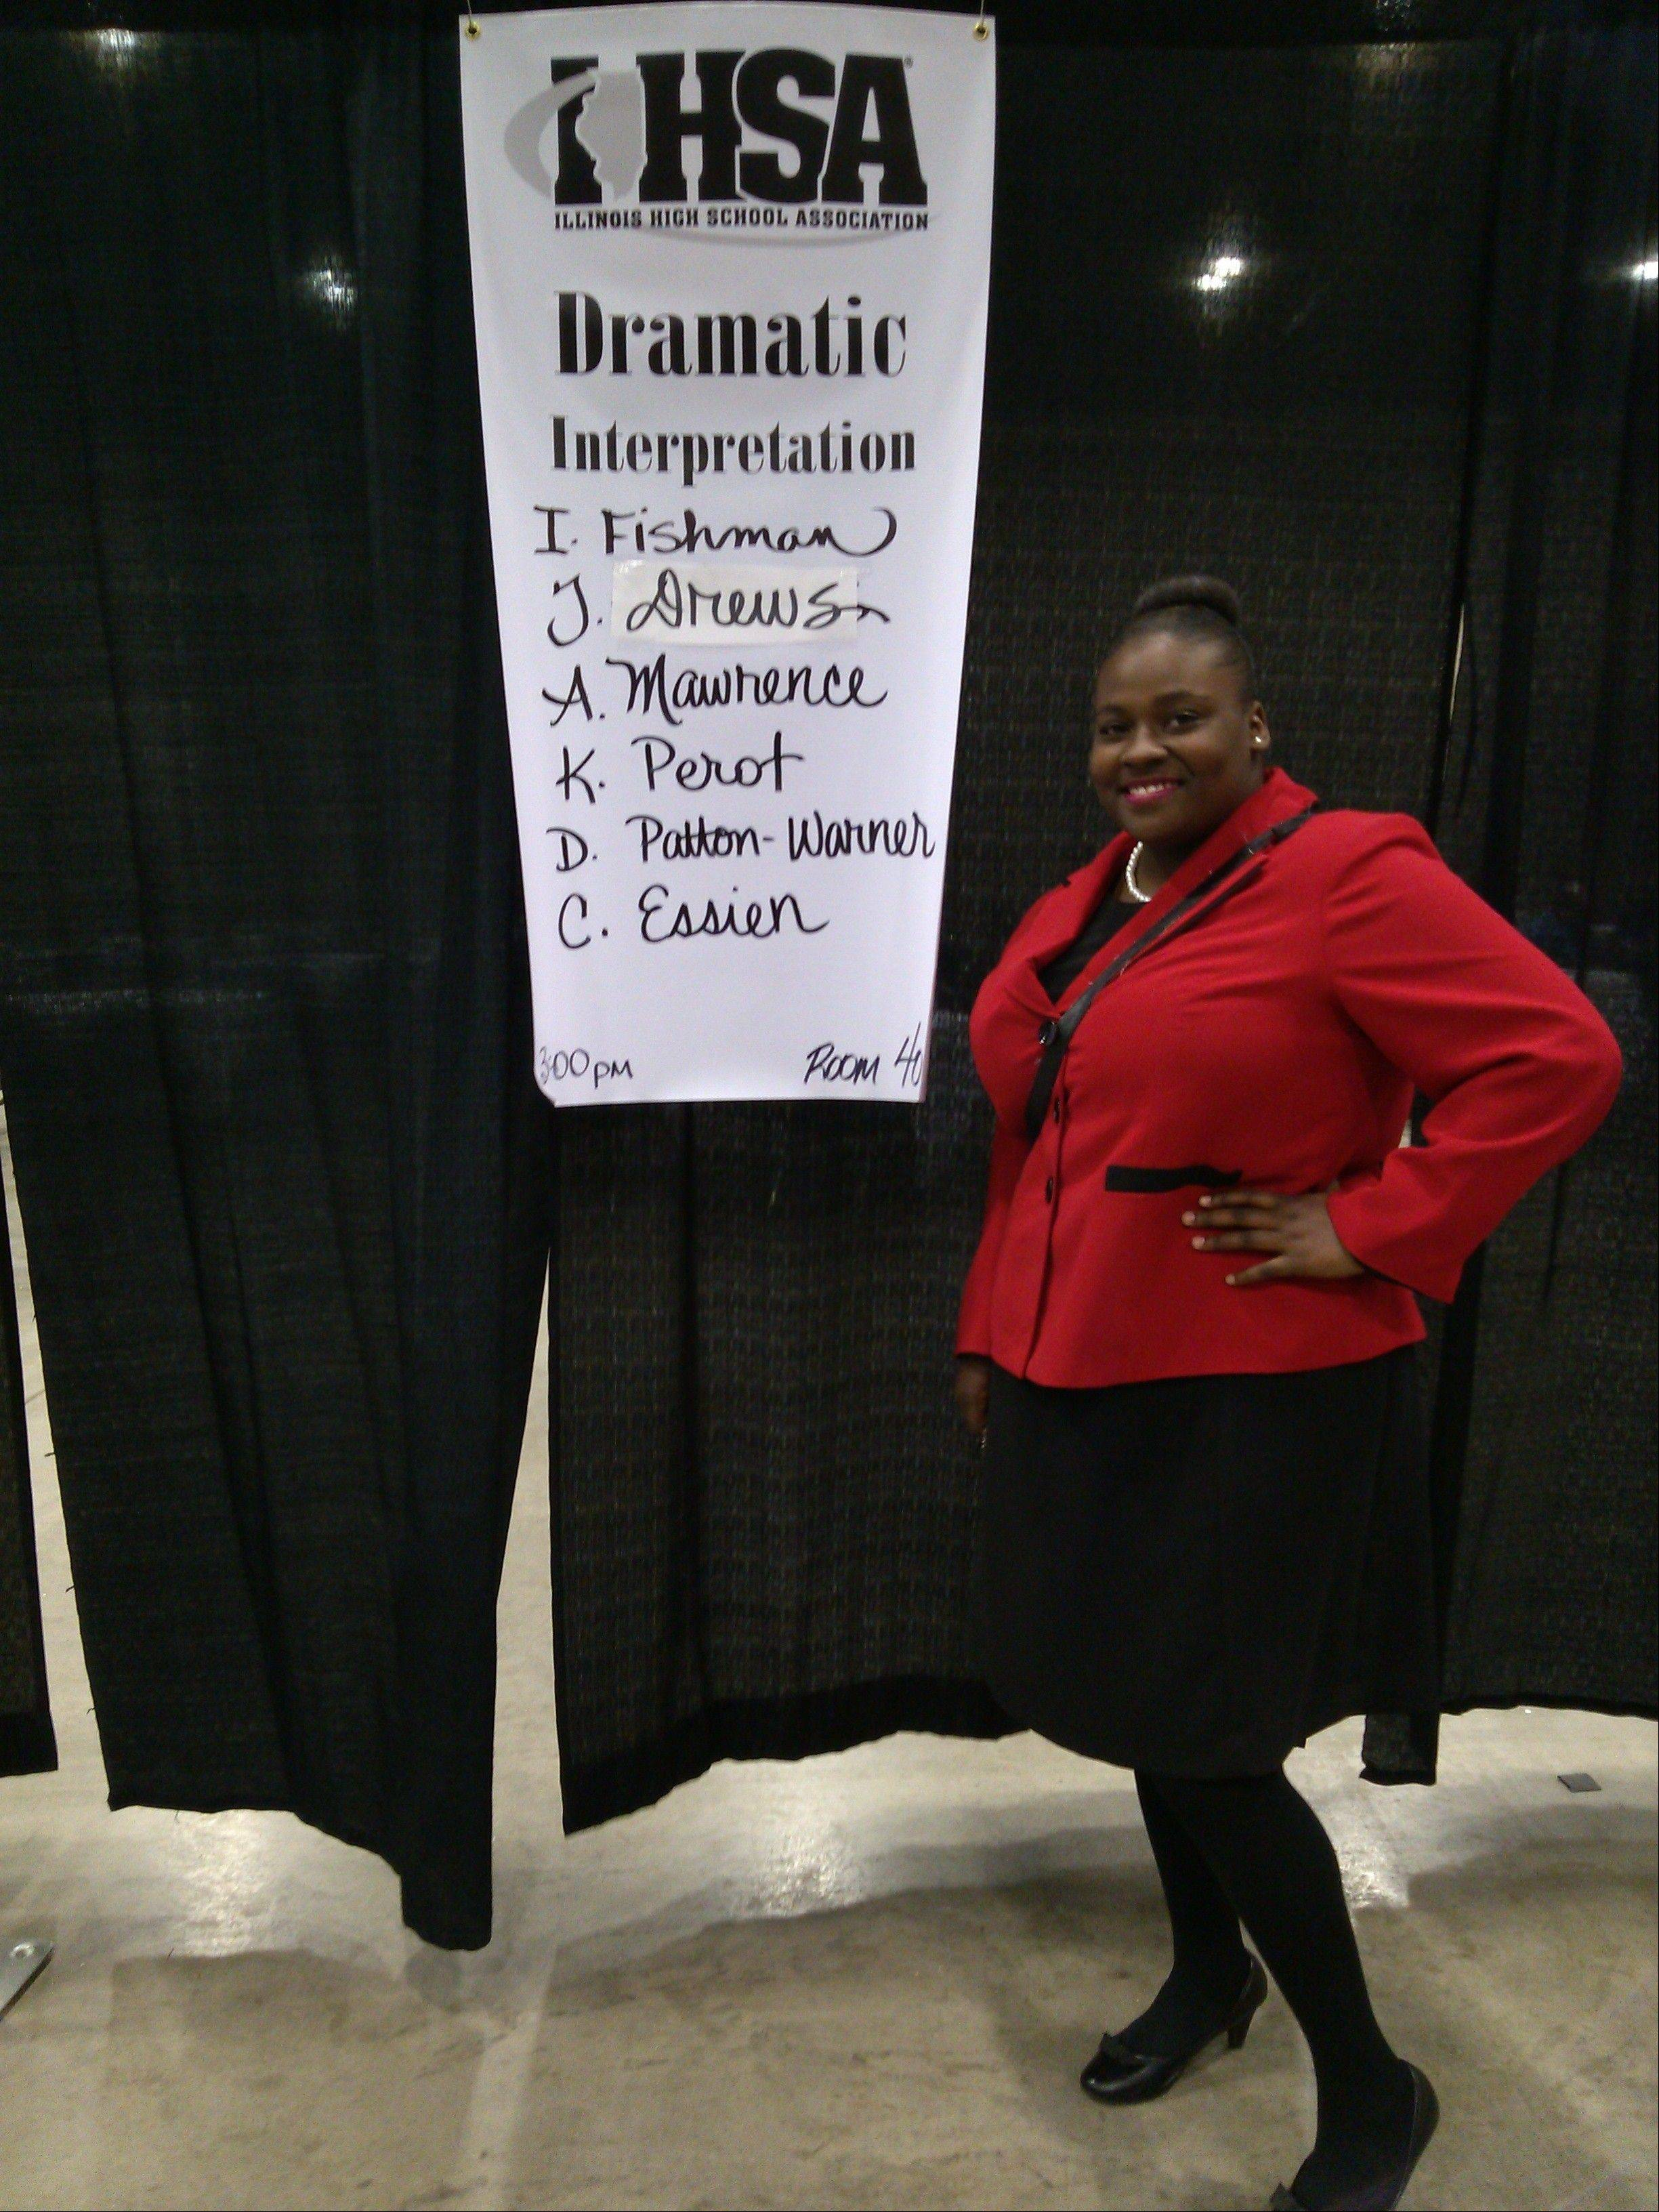 Buffalo Grove senior Kymeisha Perot tied for Fifth Place at State in Dramatic Interpretation.